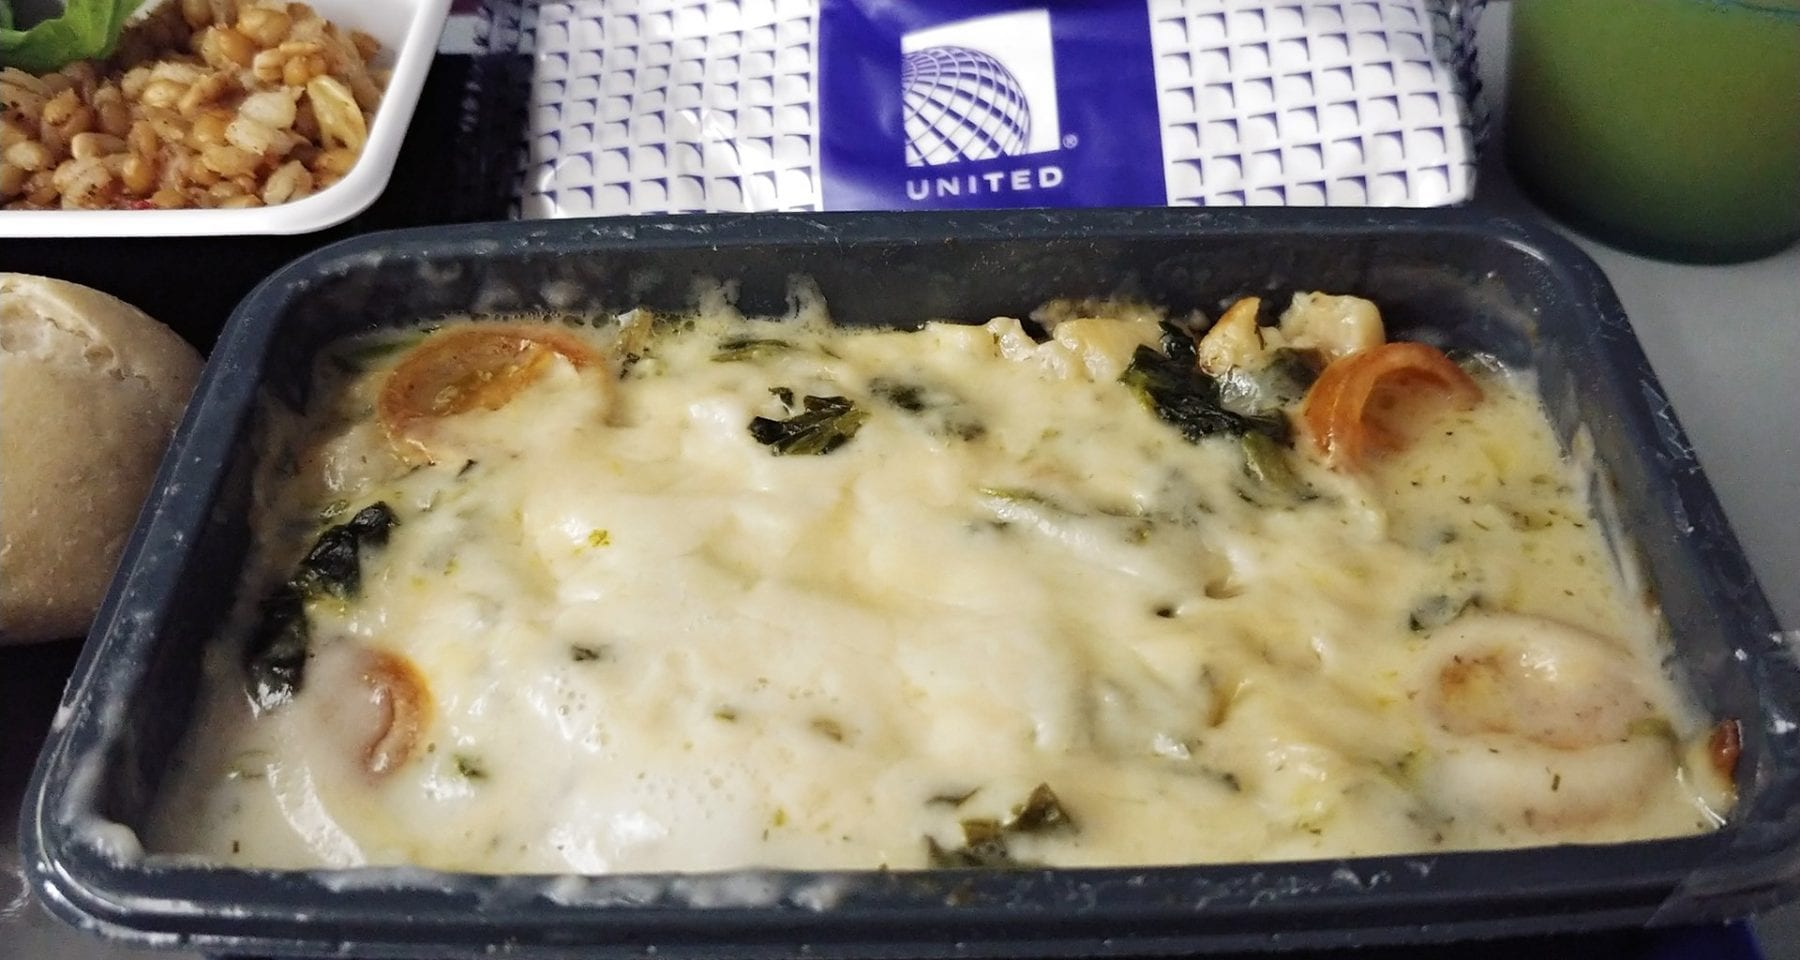 United airlines main meal economy class